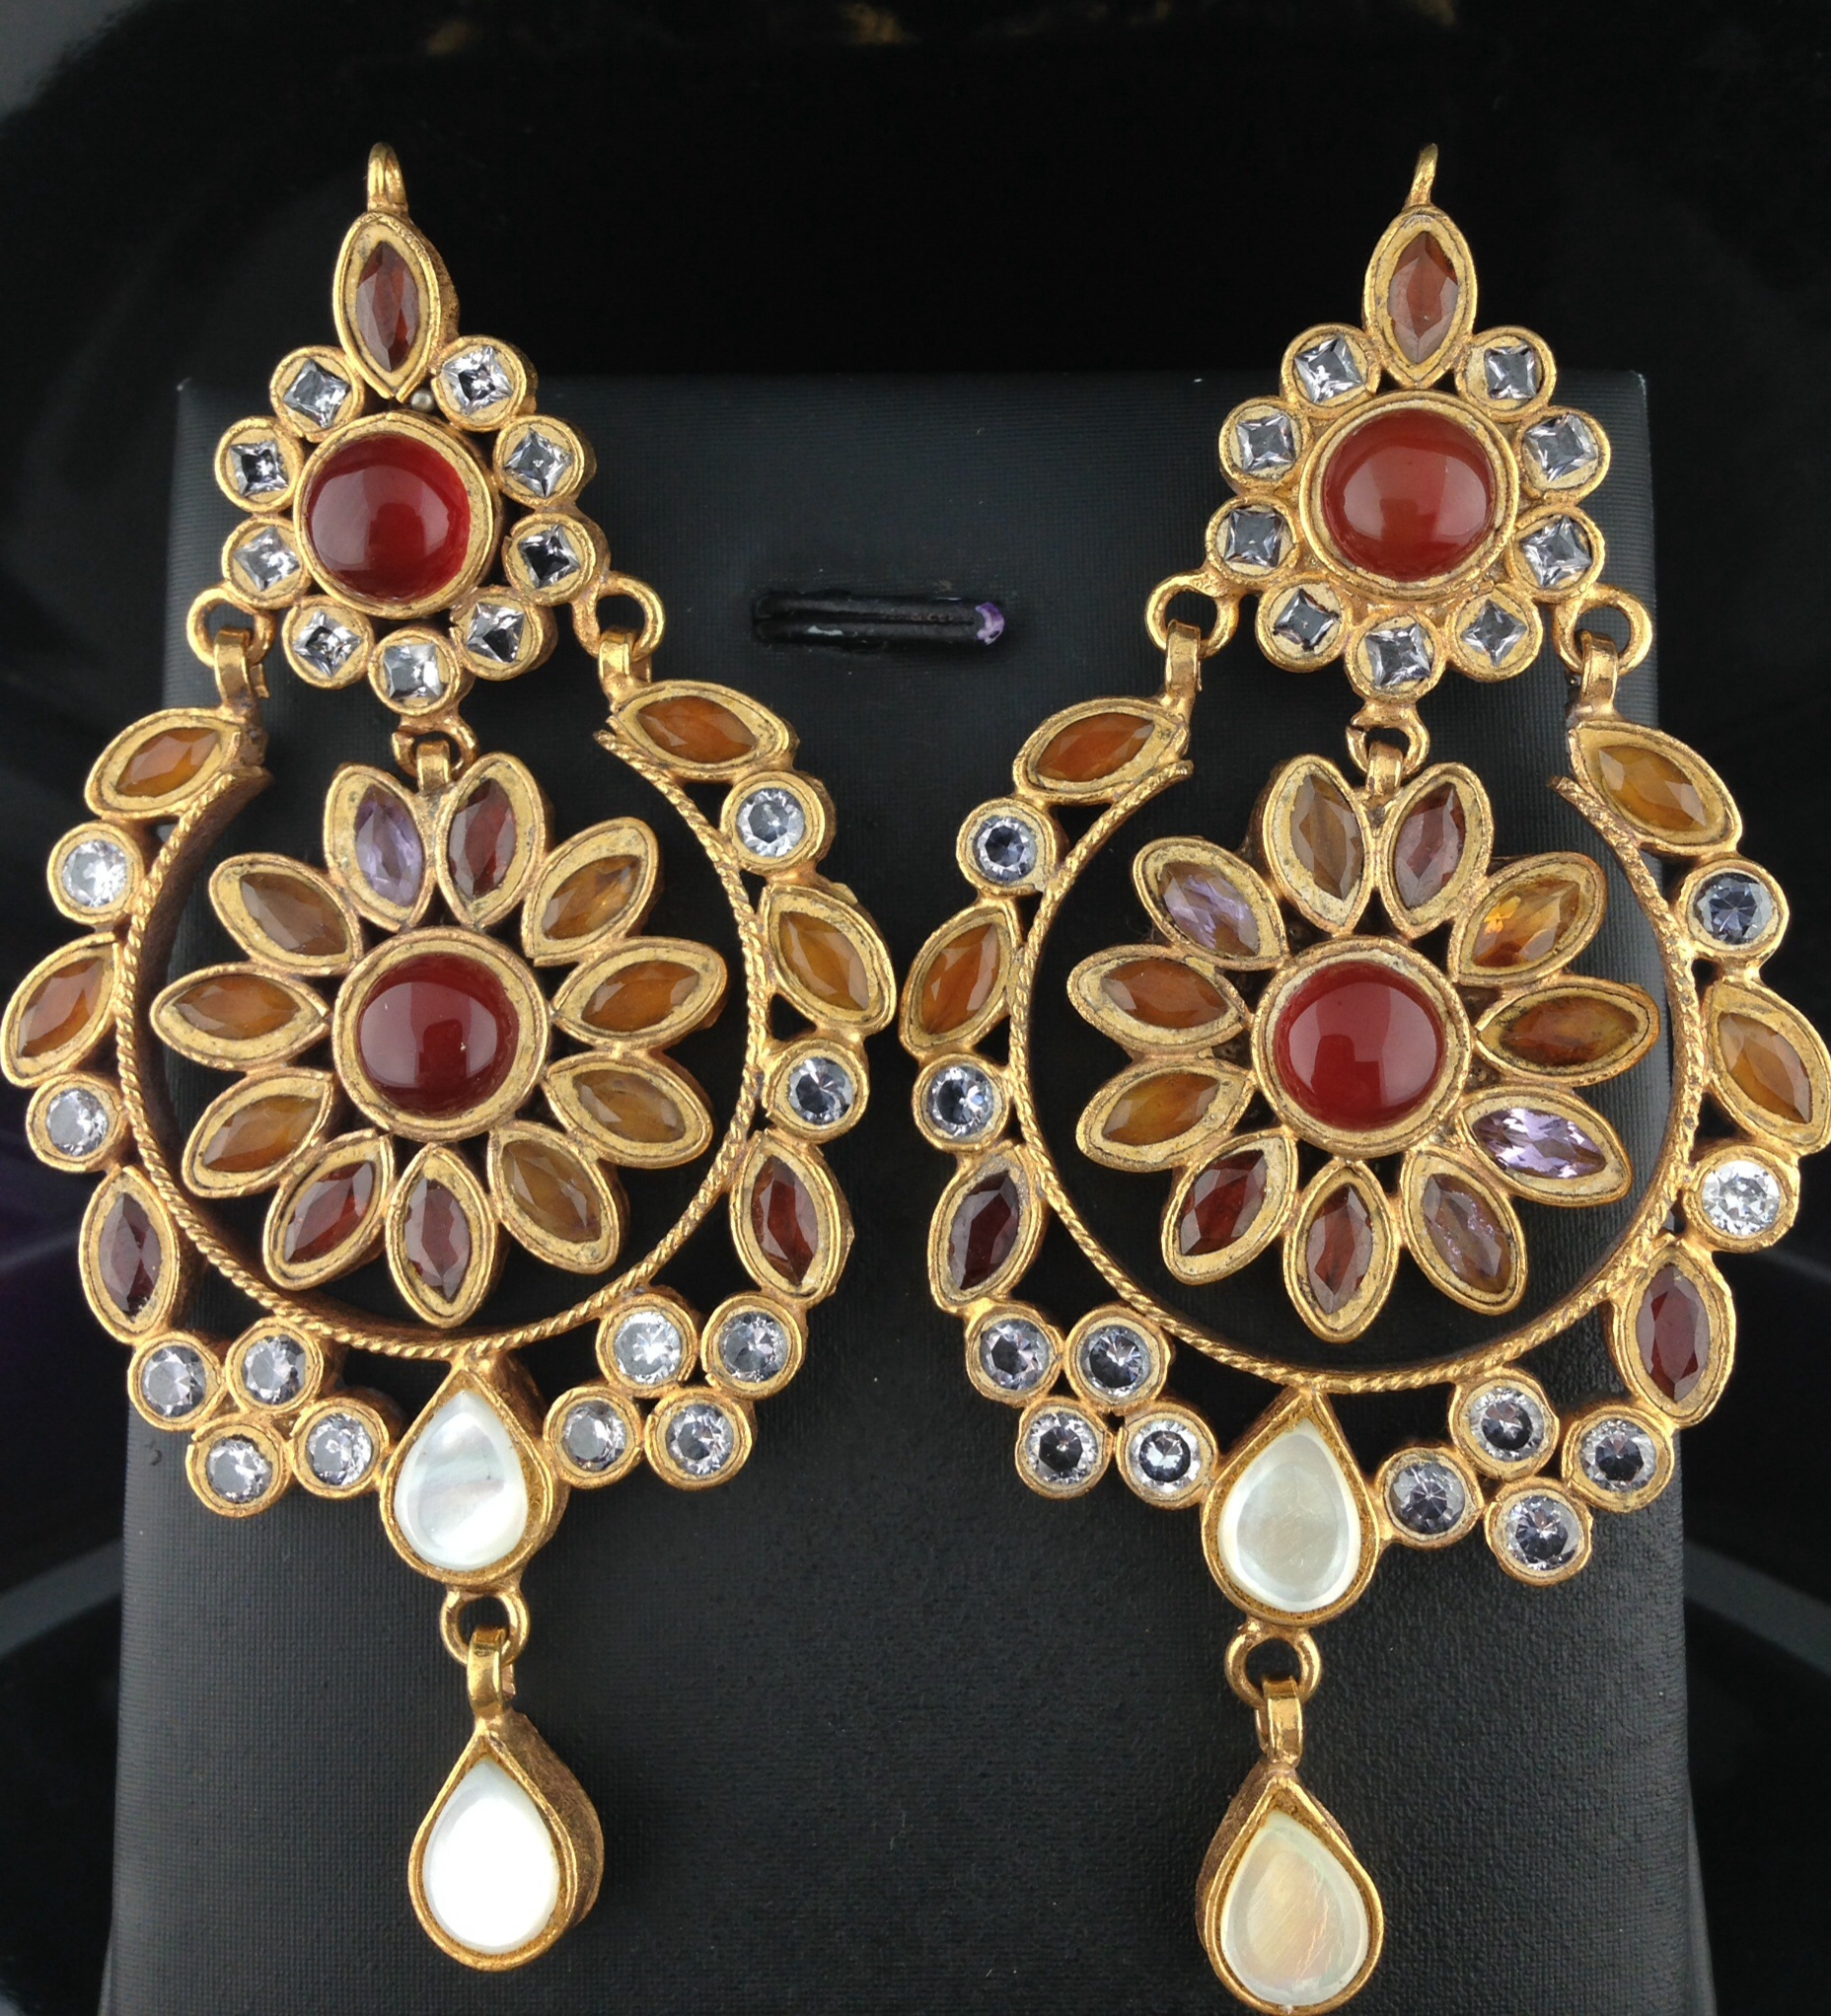 Kundan Earrings With Ruby and Champagne Stones.